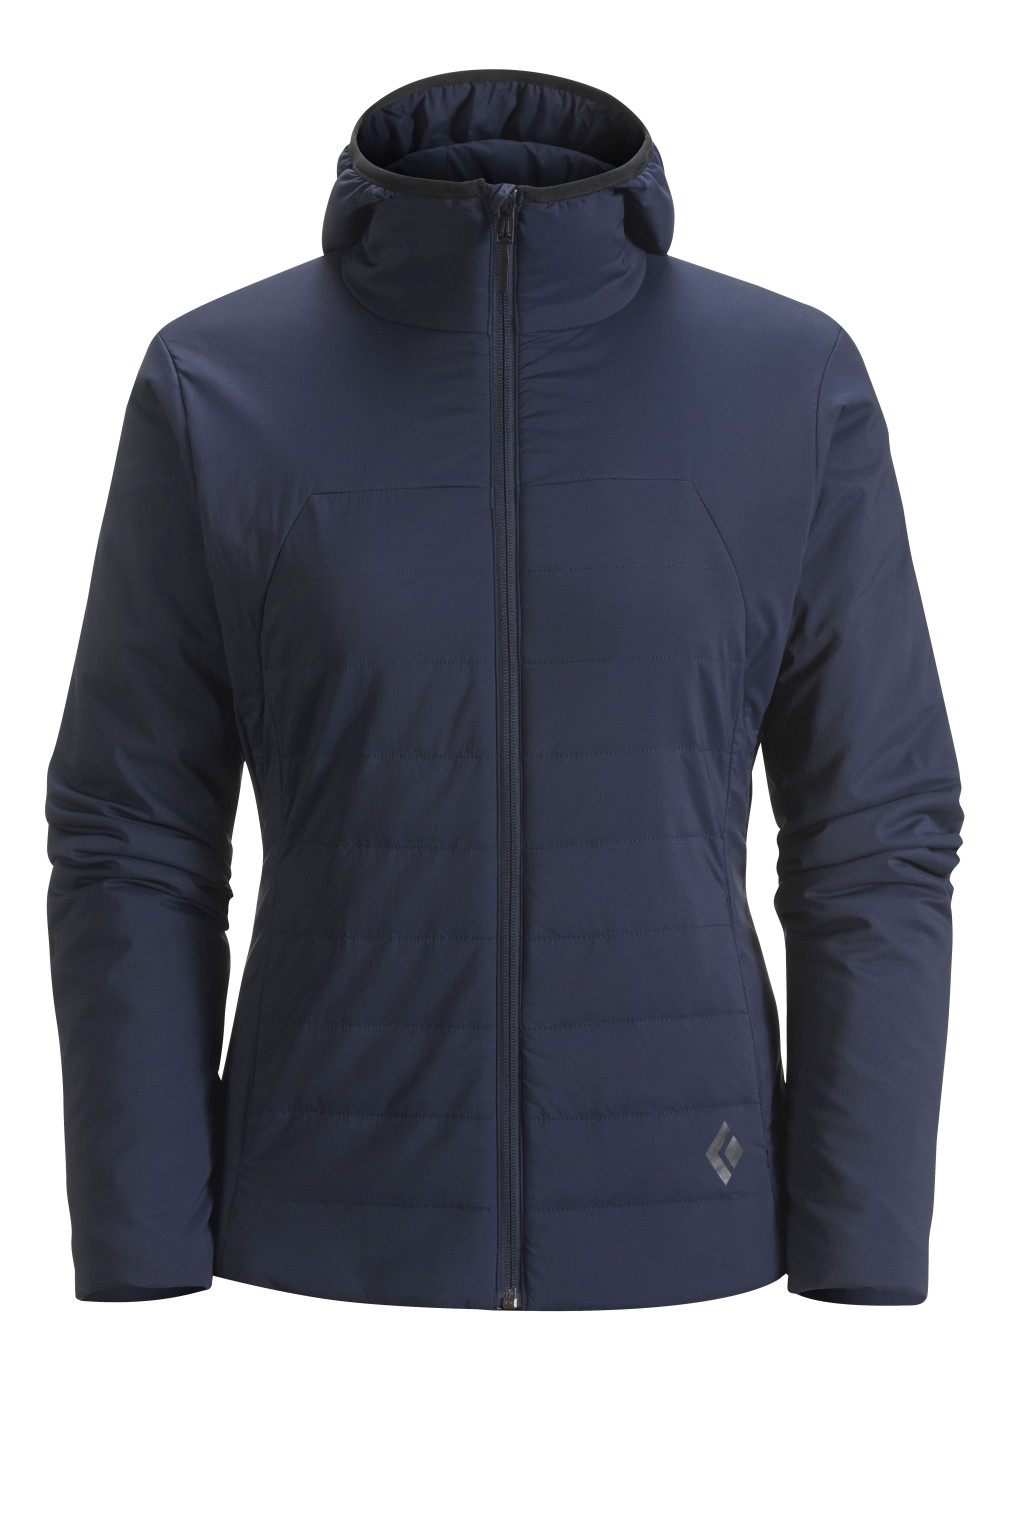 Black Diamond W's First Light Hoody Captain-30